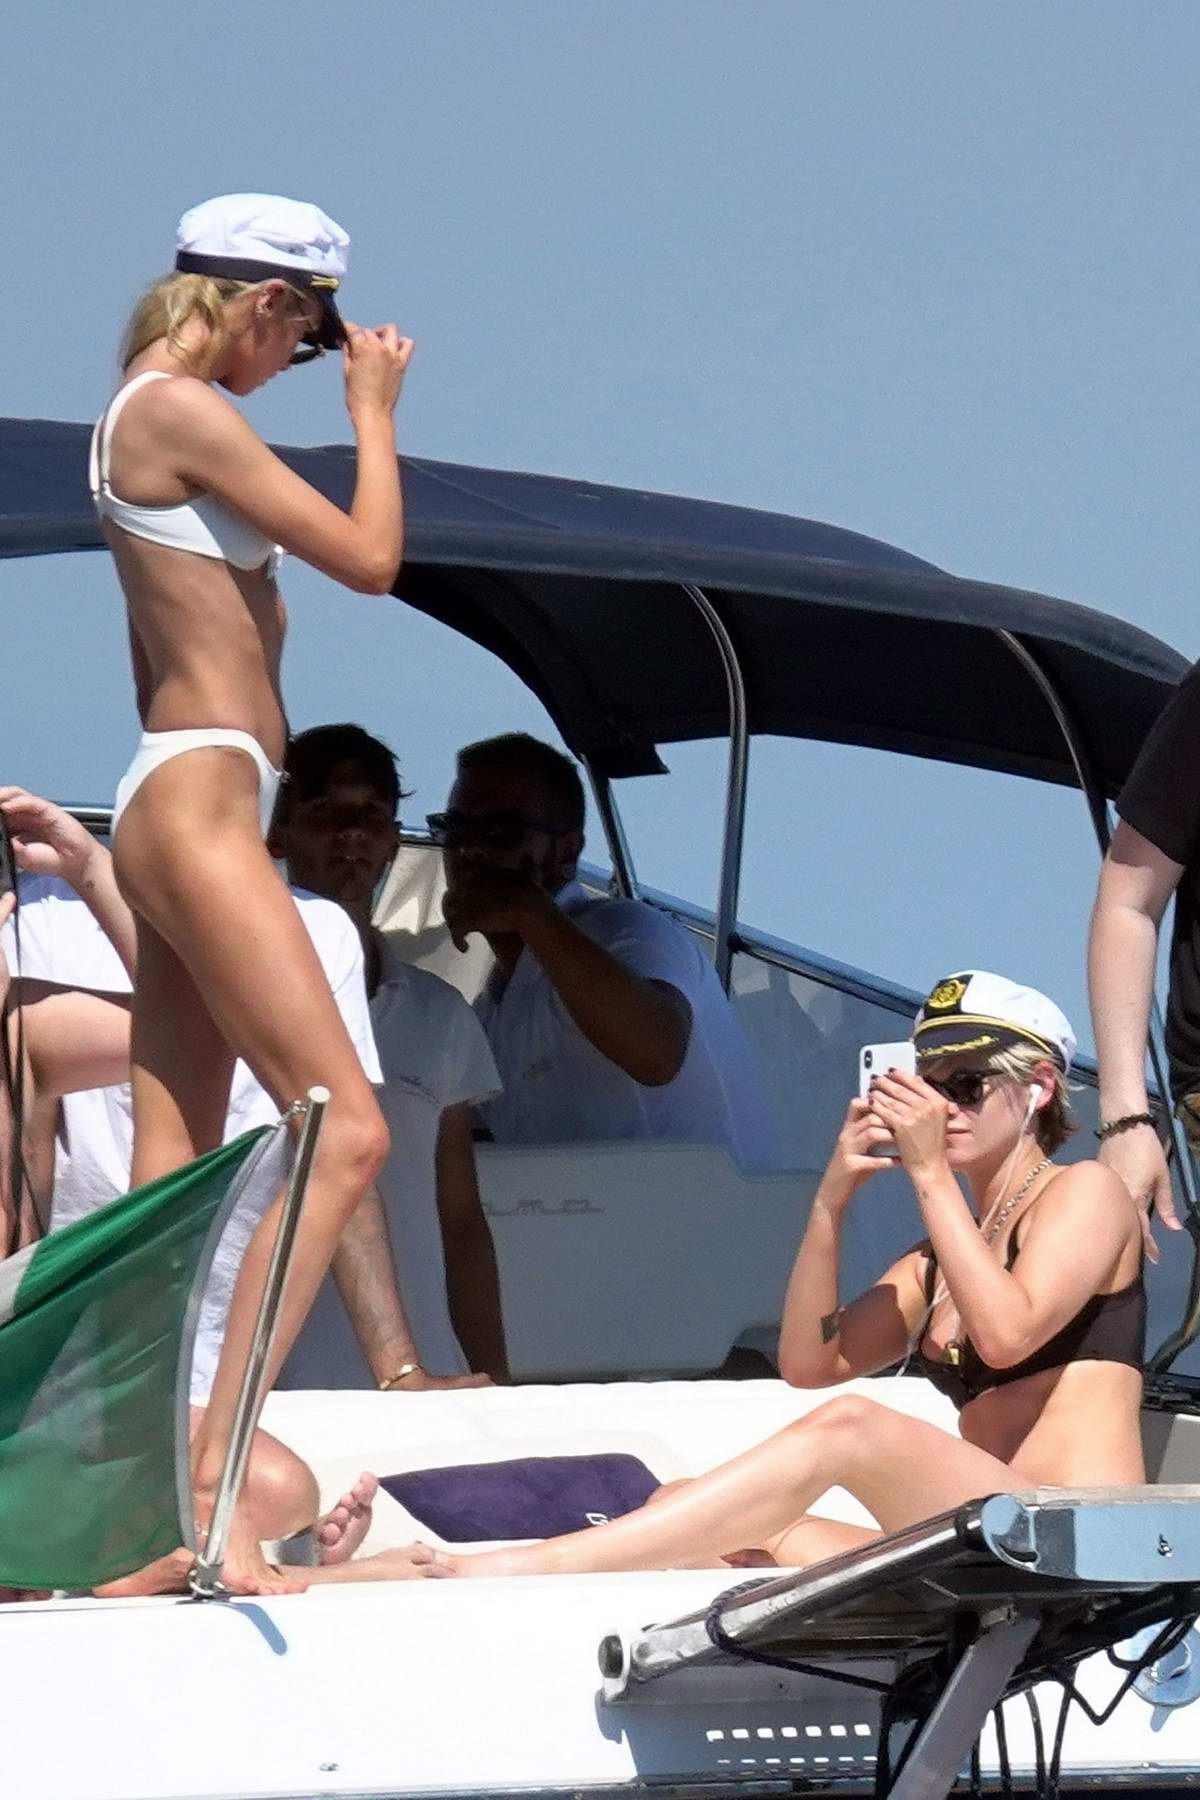 Kristen Stewart and Stella Maxwell spotted in bikini while packing on some PDA on a yacht in Capri, Italy